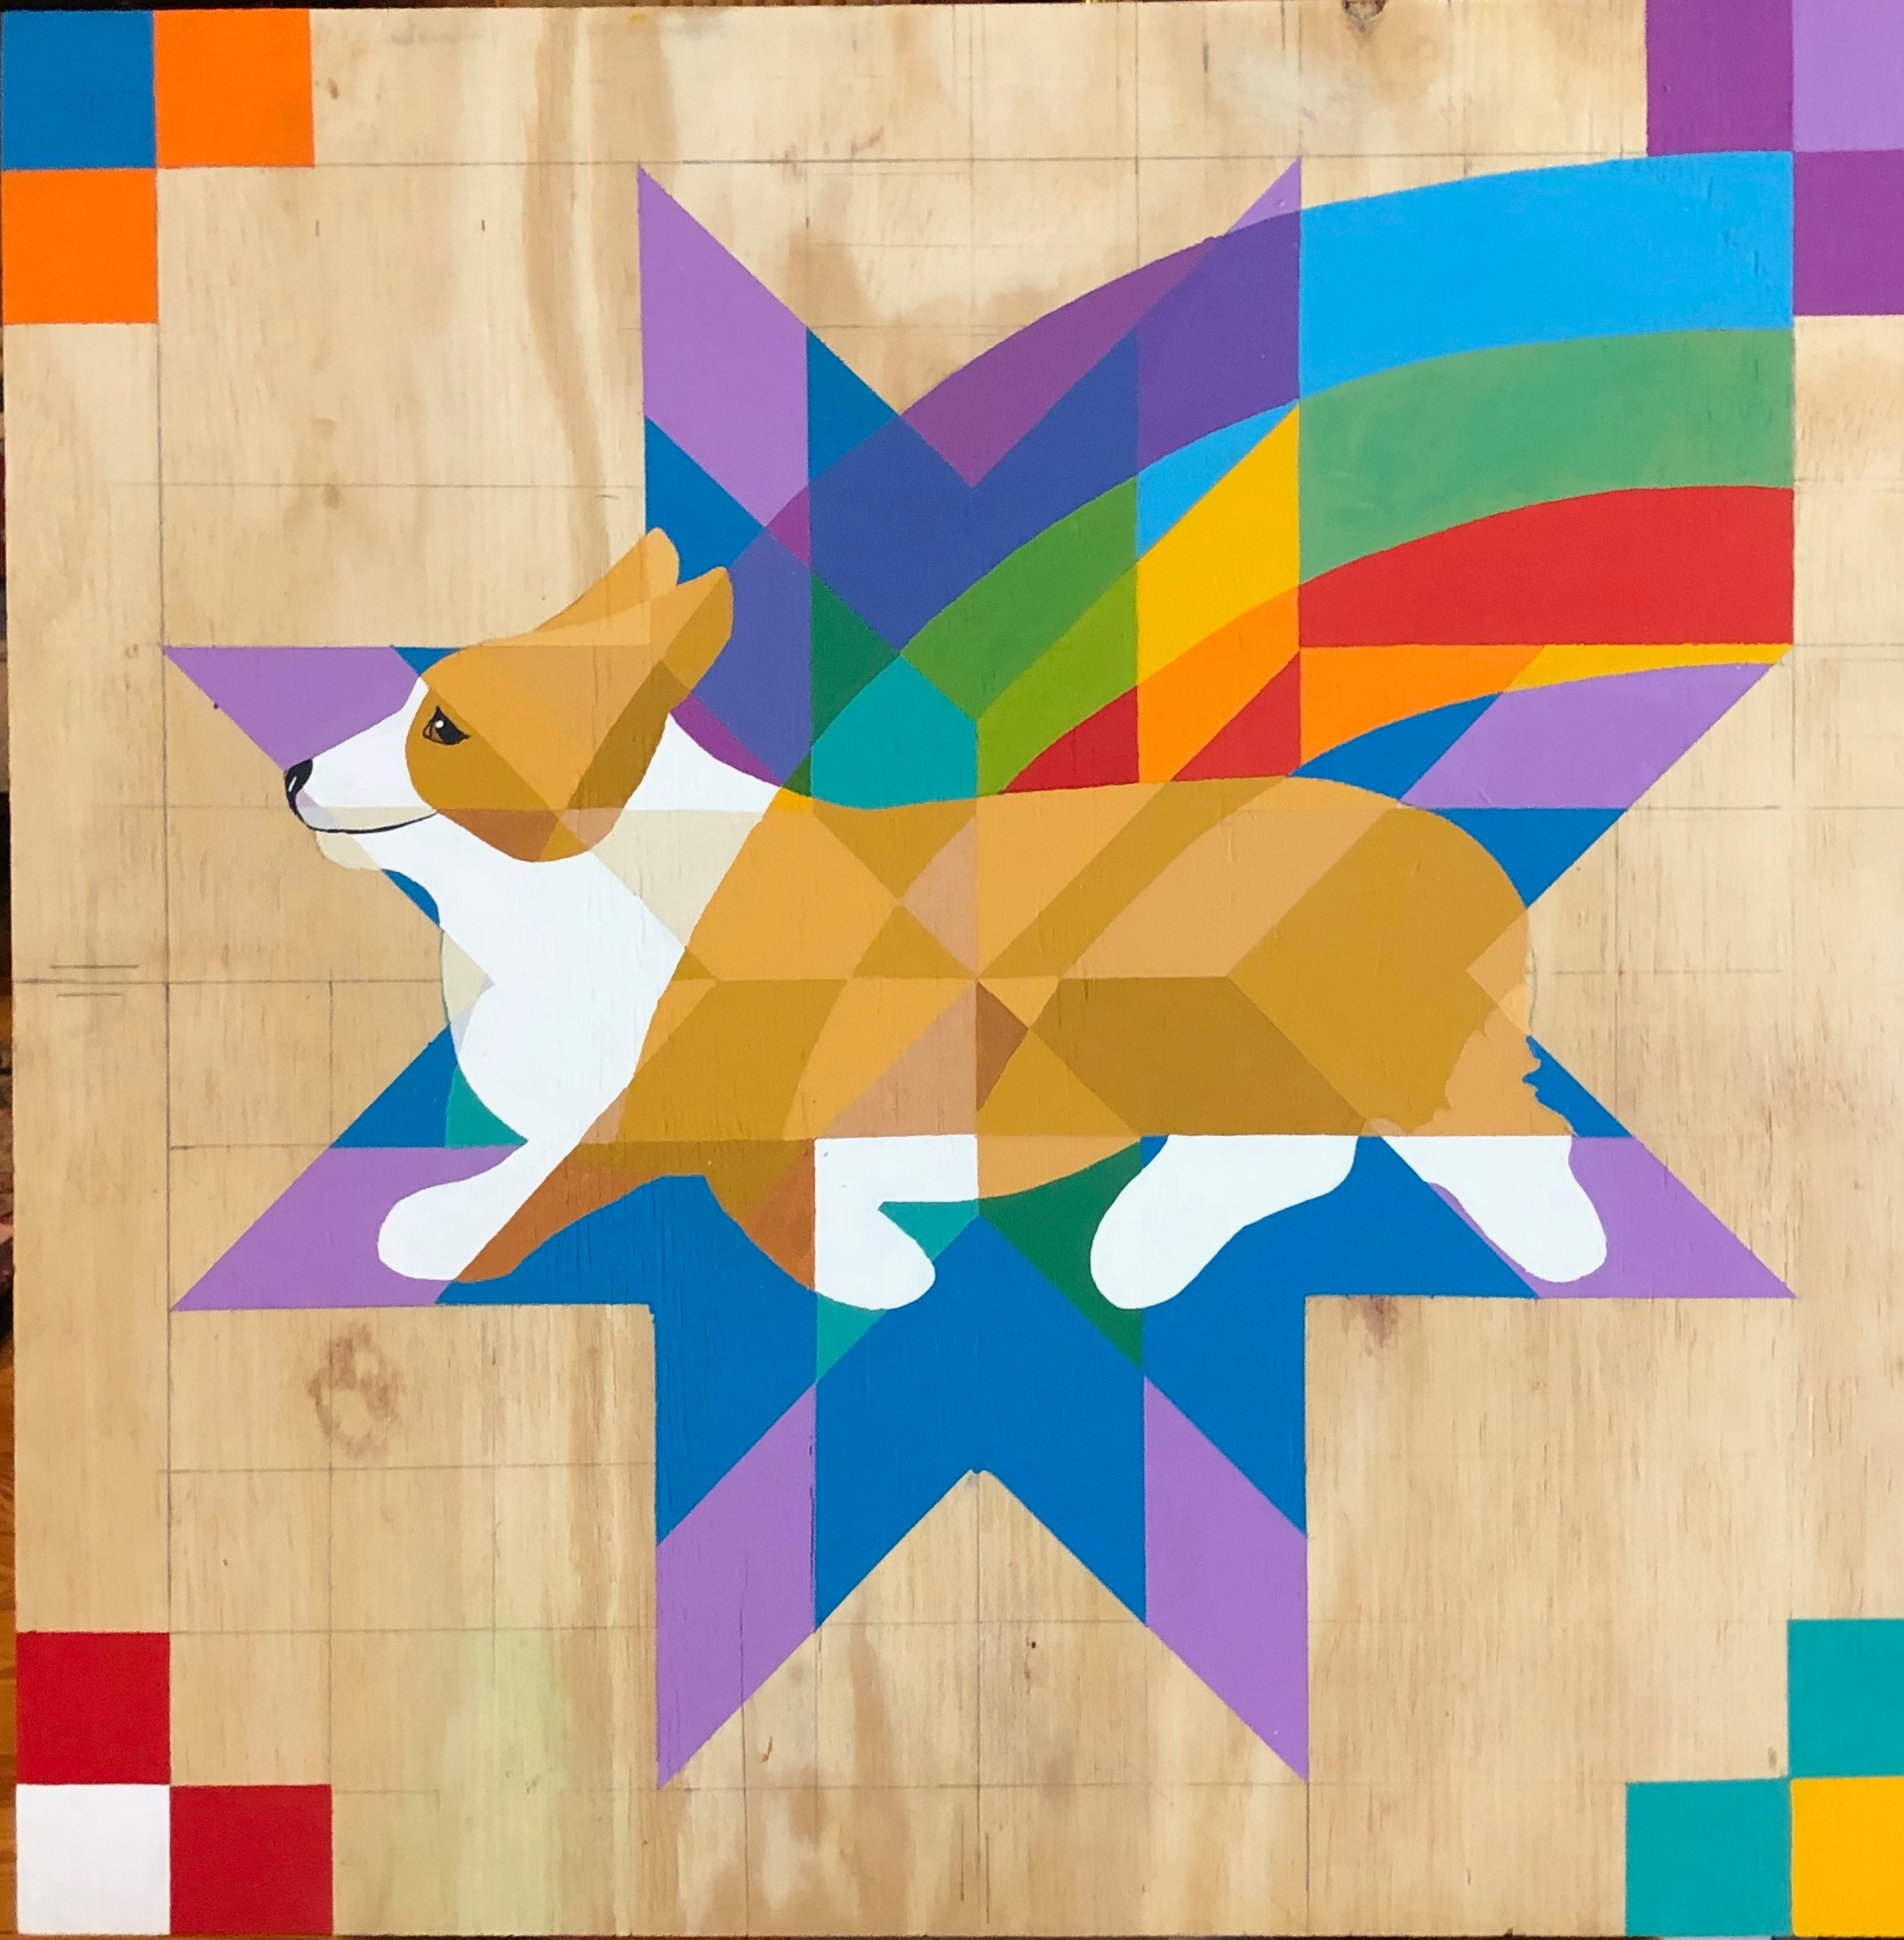 "CORGIPRIDE BARN QUILT. 24 x 24"" Acrylic on wood. This will be varnished and weatherproof. $125"